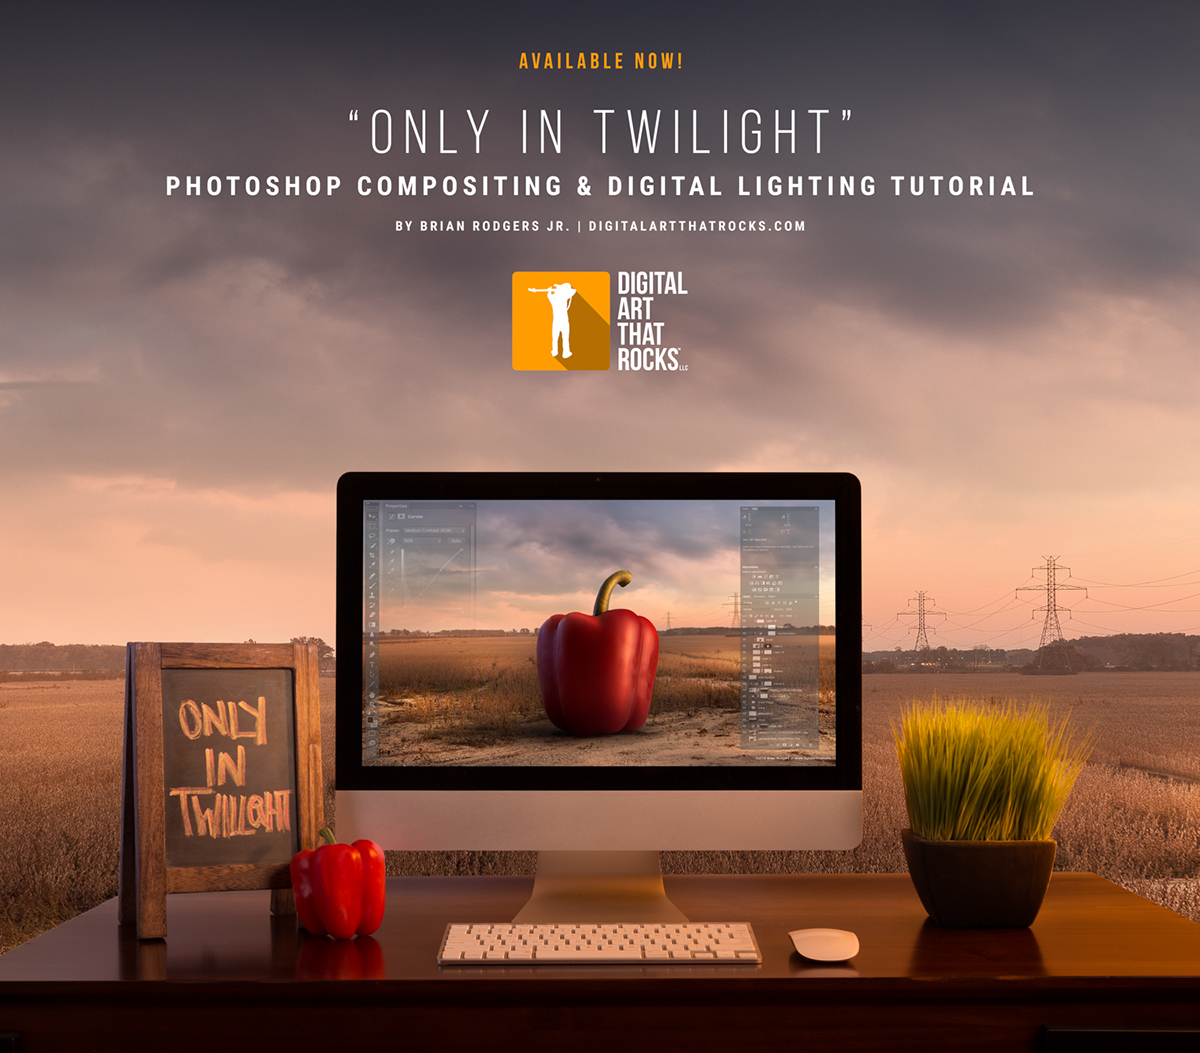 Only in twilight photoshop compositing tutorial on behance learn how to create stunning soft light composite imagery in photoshop tutorial by commercial photographerdigital artist brian rodgers jr of digital art baditri Gallery